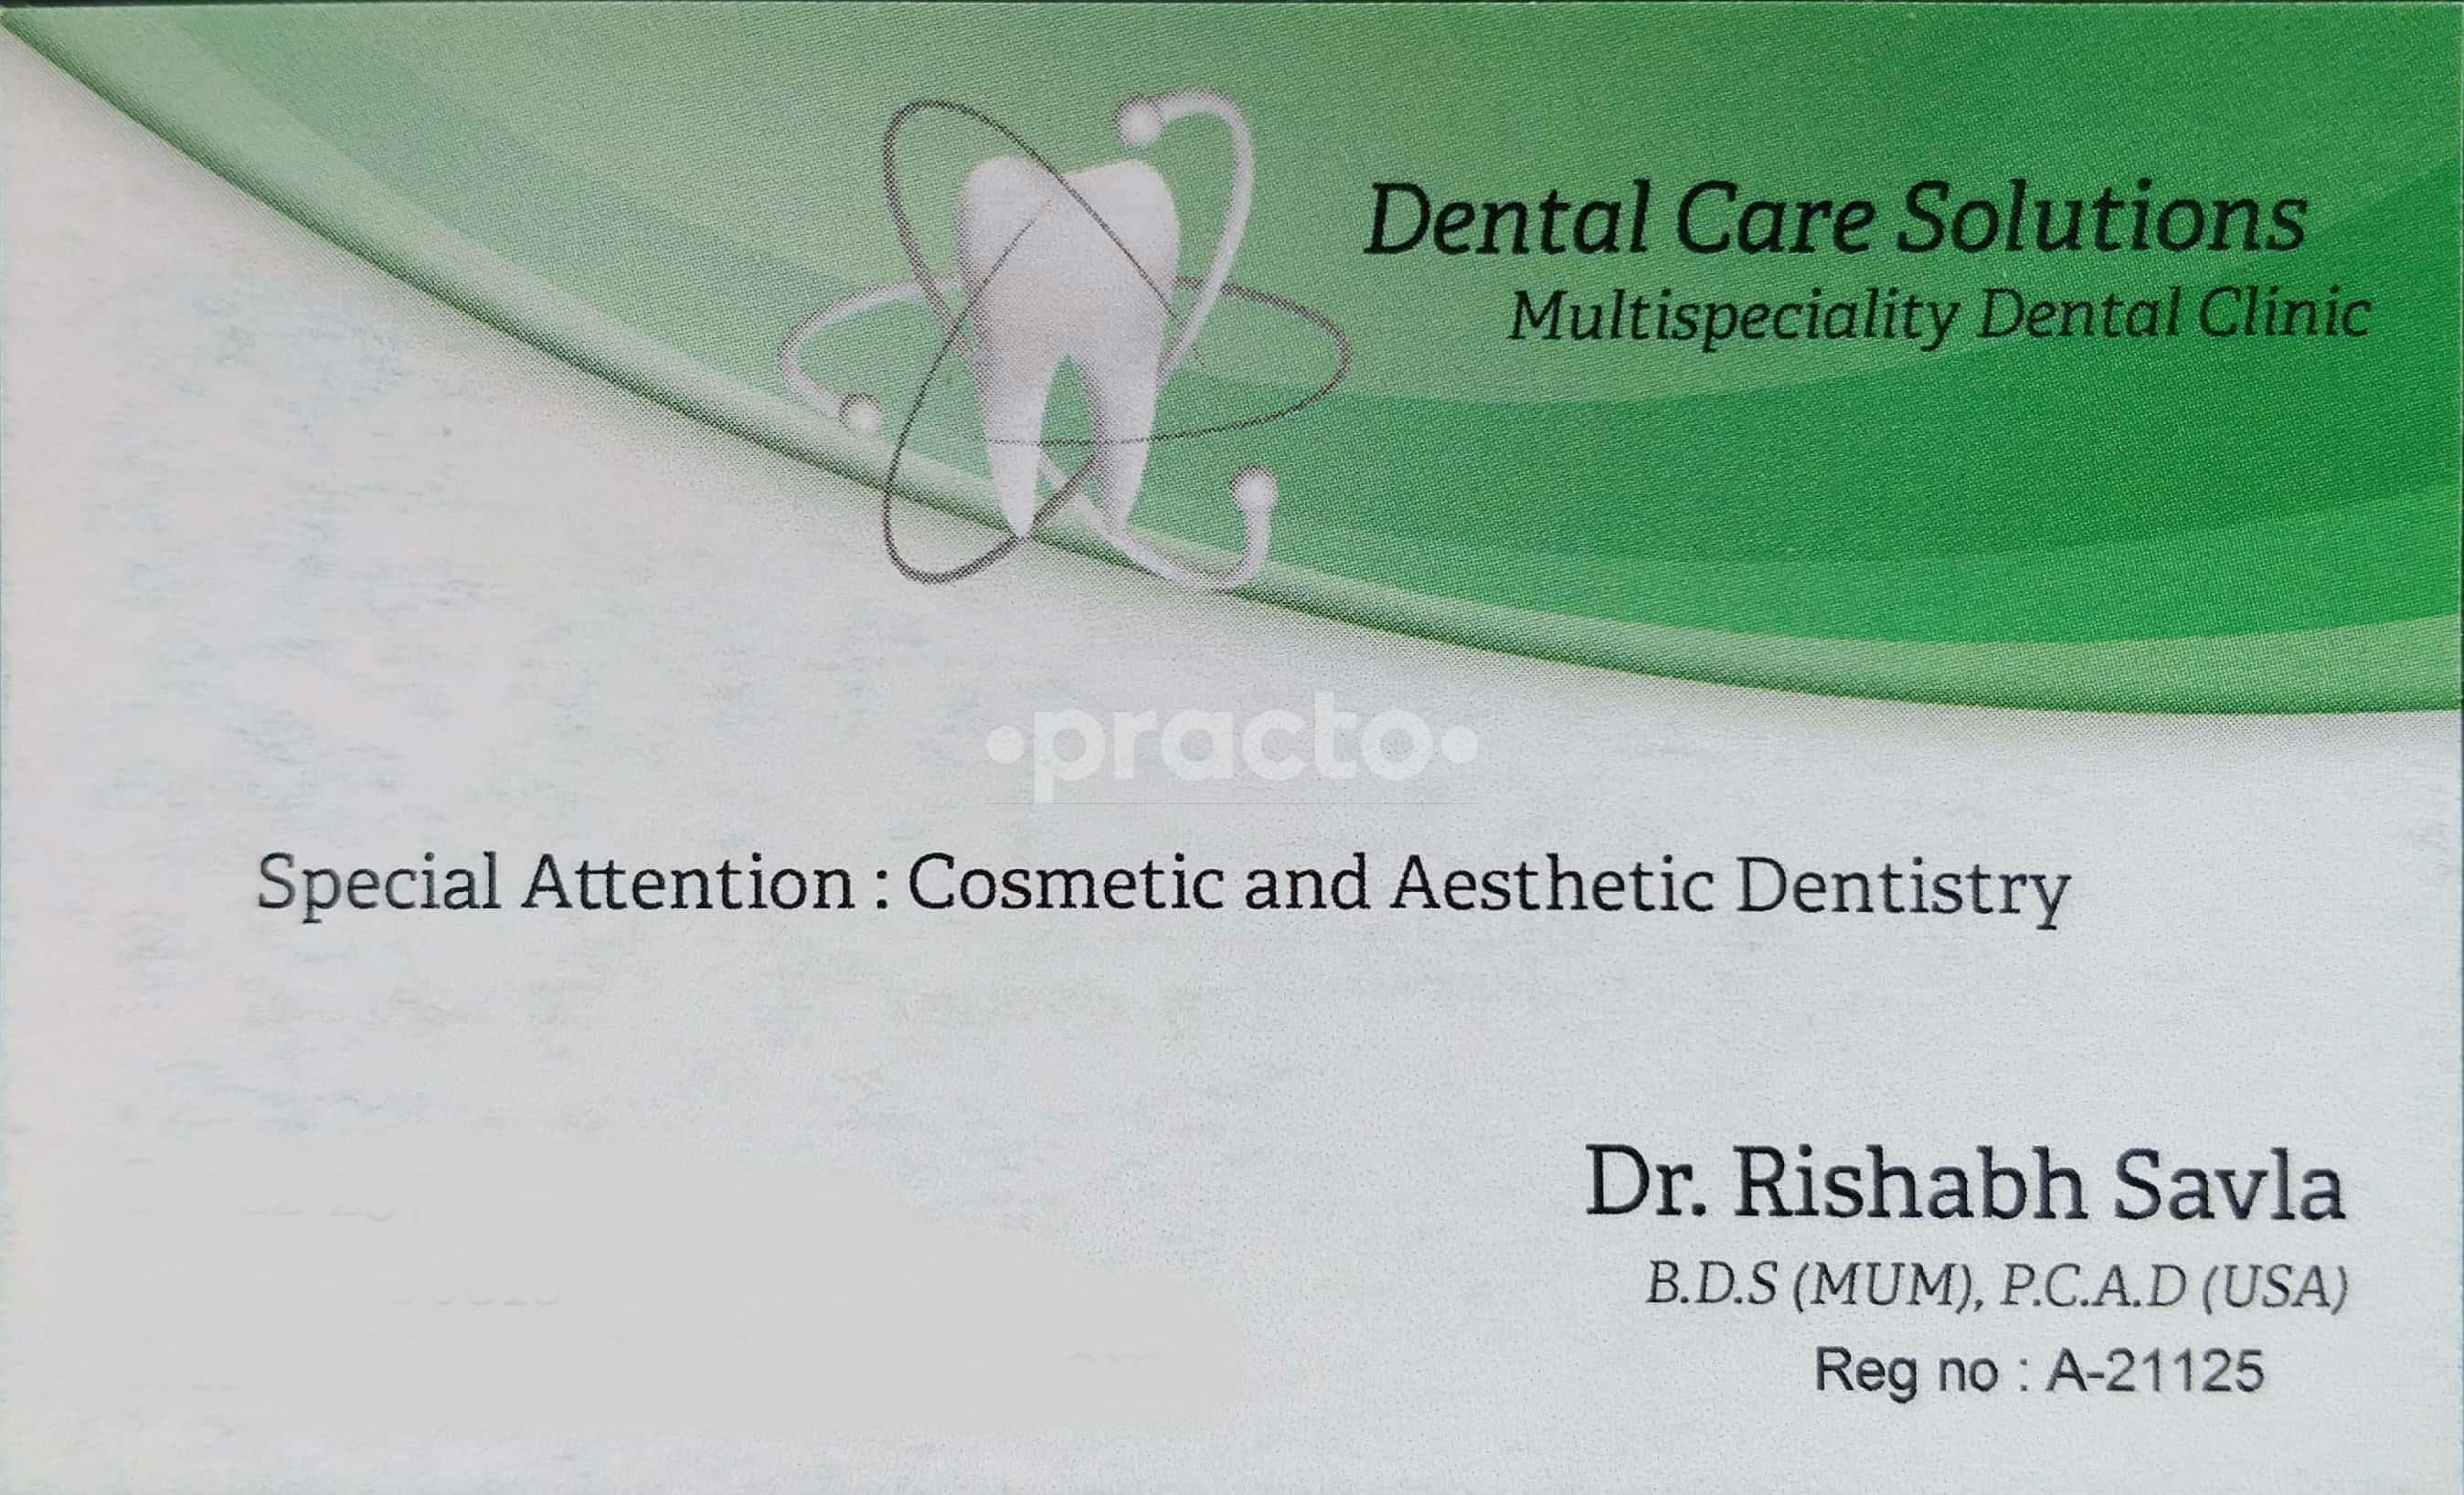 Dental Care Solutions